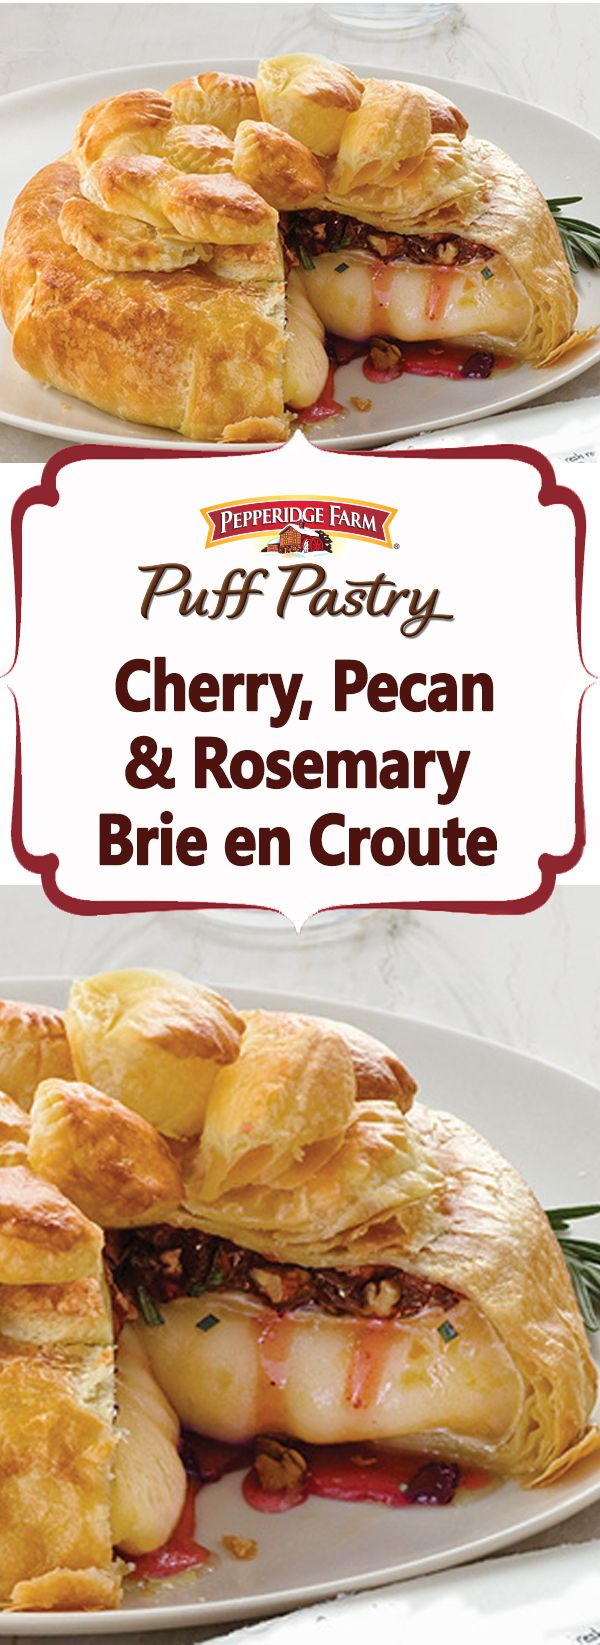 Pepperidge Farm Puff Pastry Dried Cherries, Pecans & Rosemary Brie en Croute Recipe. It's easy to impress your guests with this elegant appetizer that features creamy Brie cheese topped with an unexpected combination of sweet and savory ingredients, all wrapped up in flaky Puff Pastry.